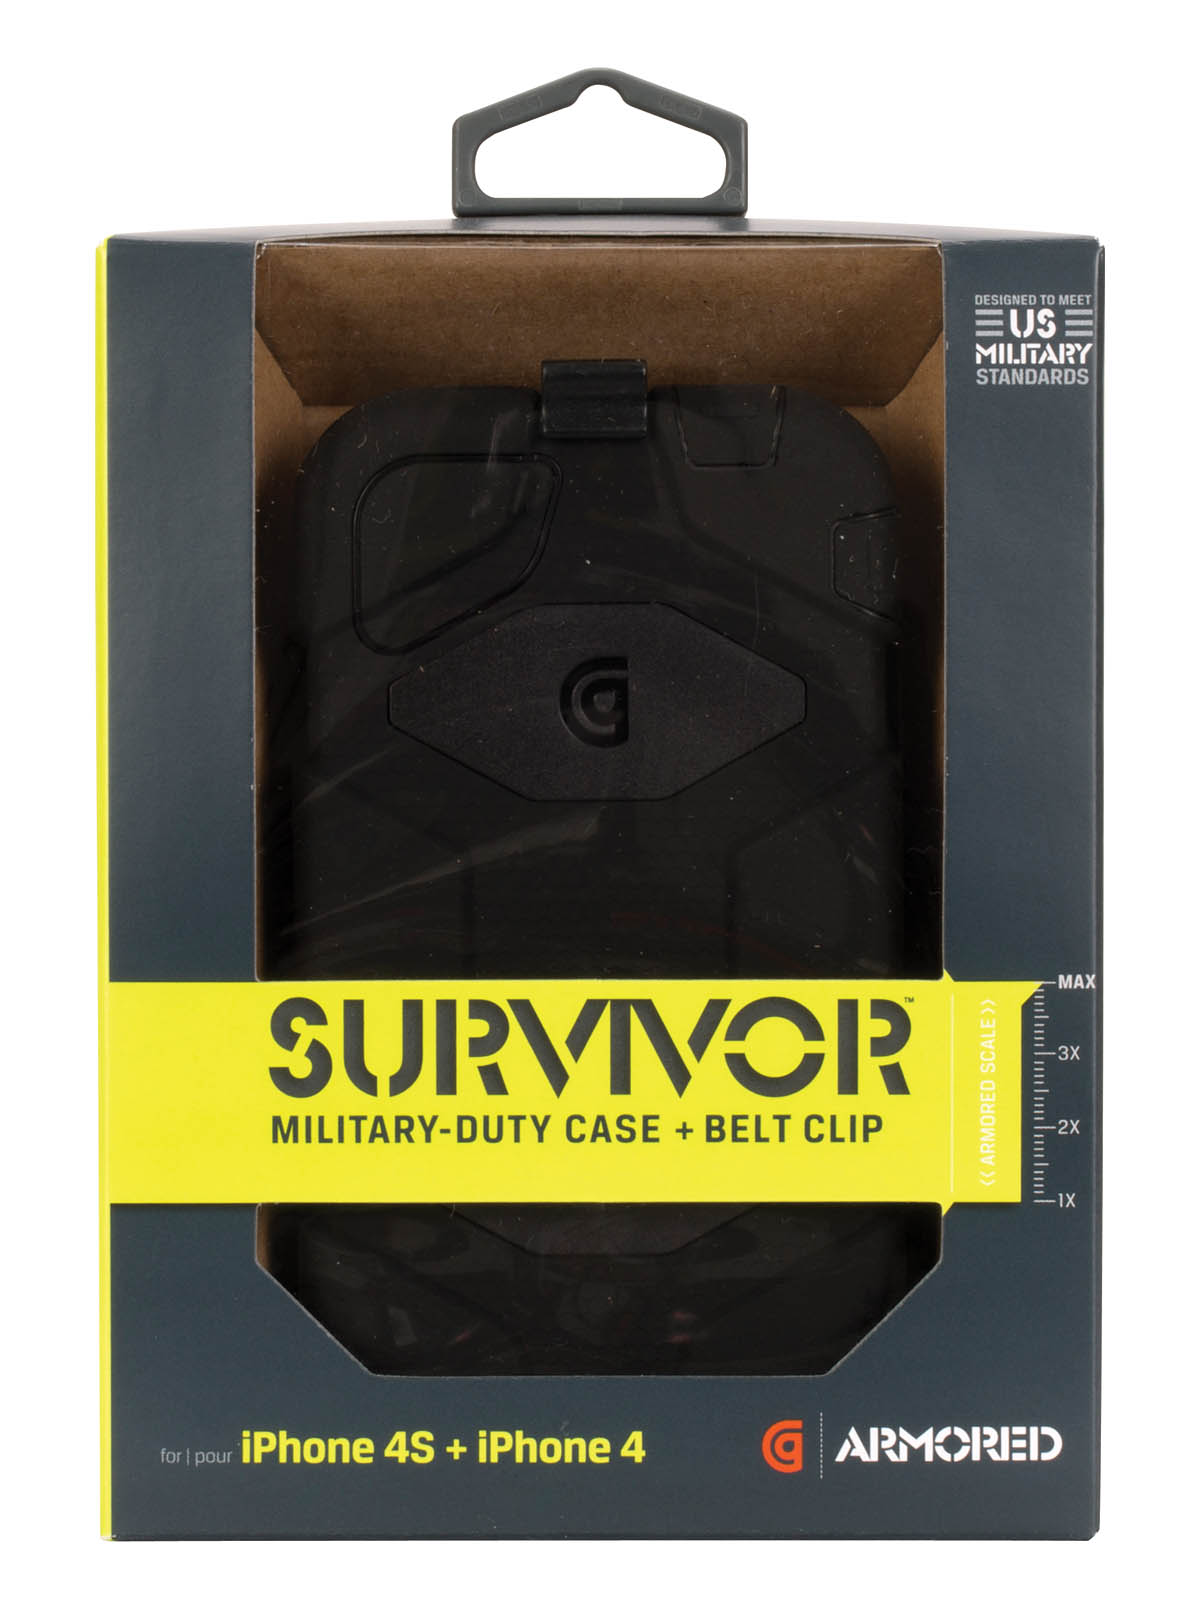 Survivor for iPhone 4S: Accessory